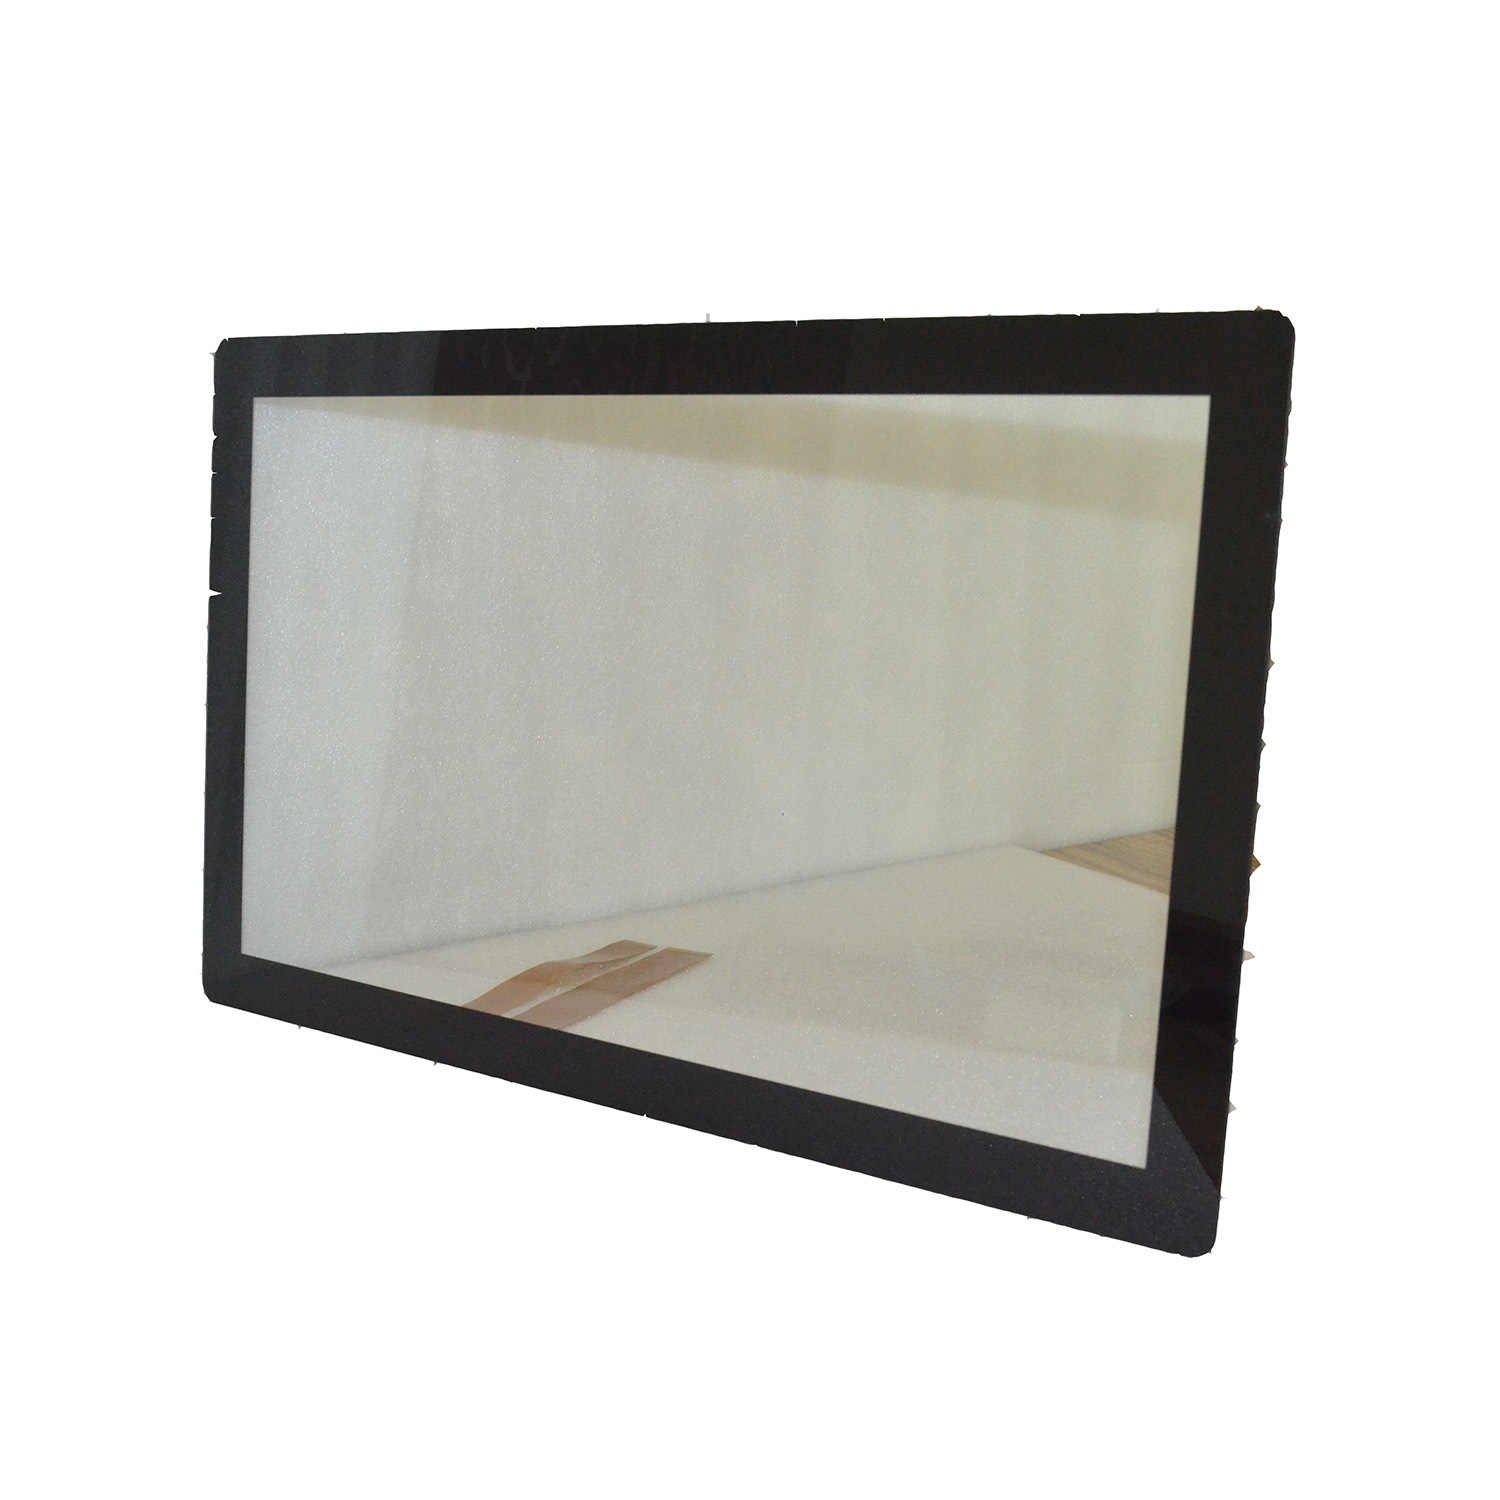 17 Inch TFT LCD Capacitive Touch Screen for Indoor Usage